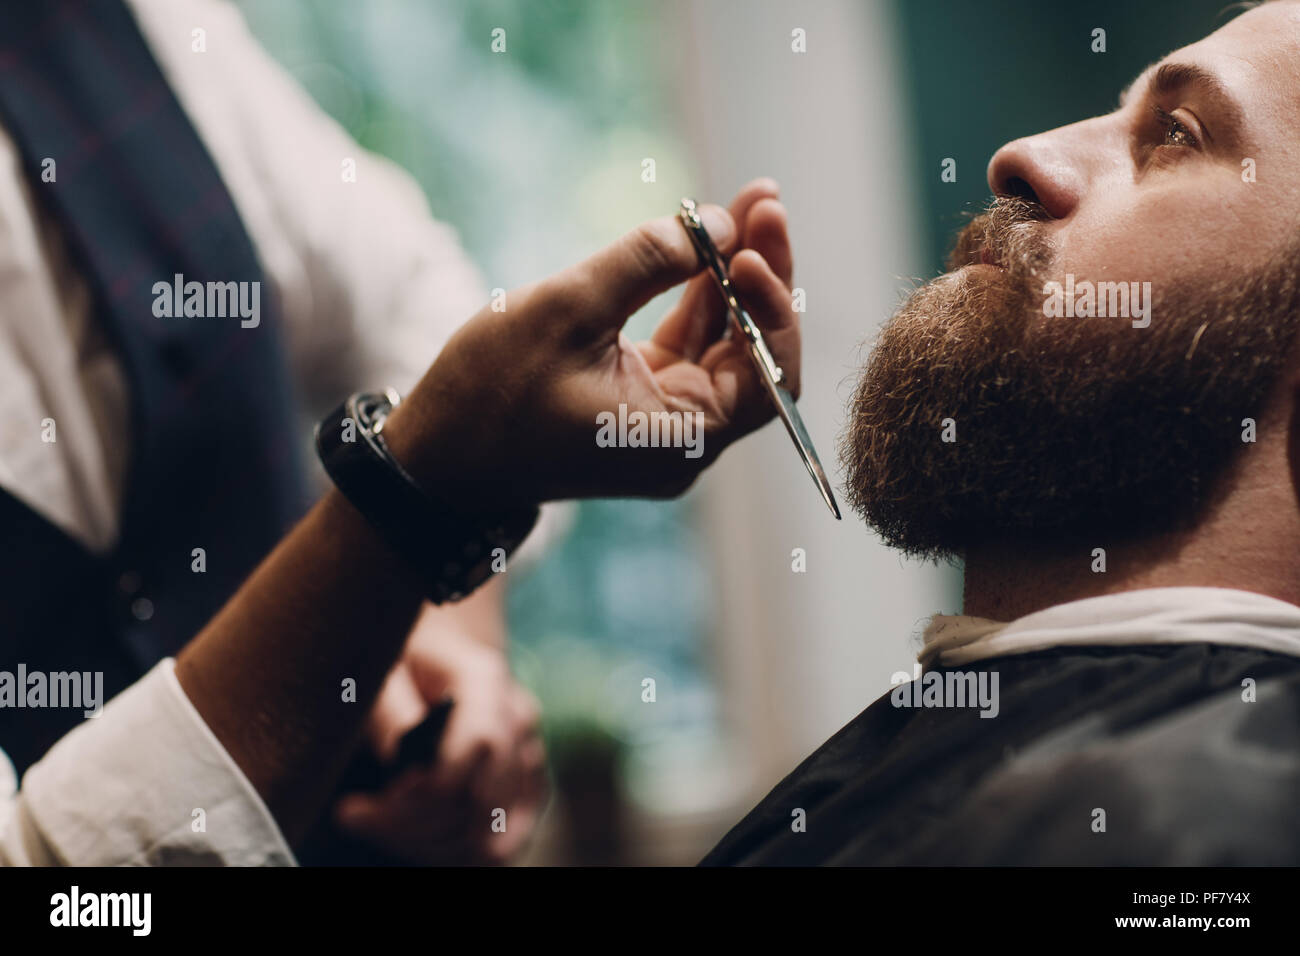 Barbershop concept. Beard model man and barber with scissors. - Stock Image